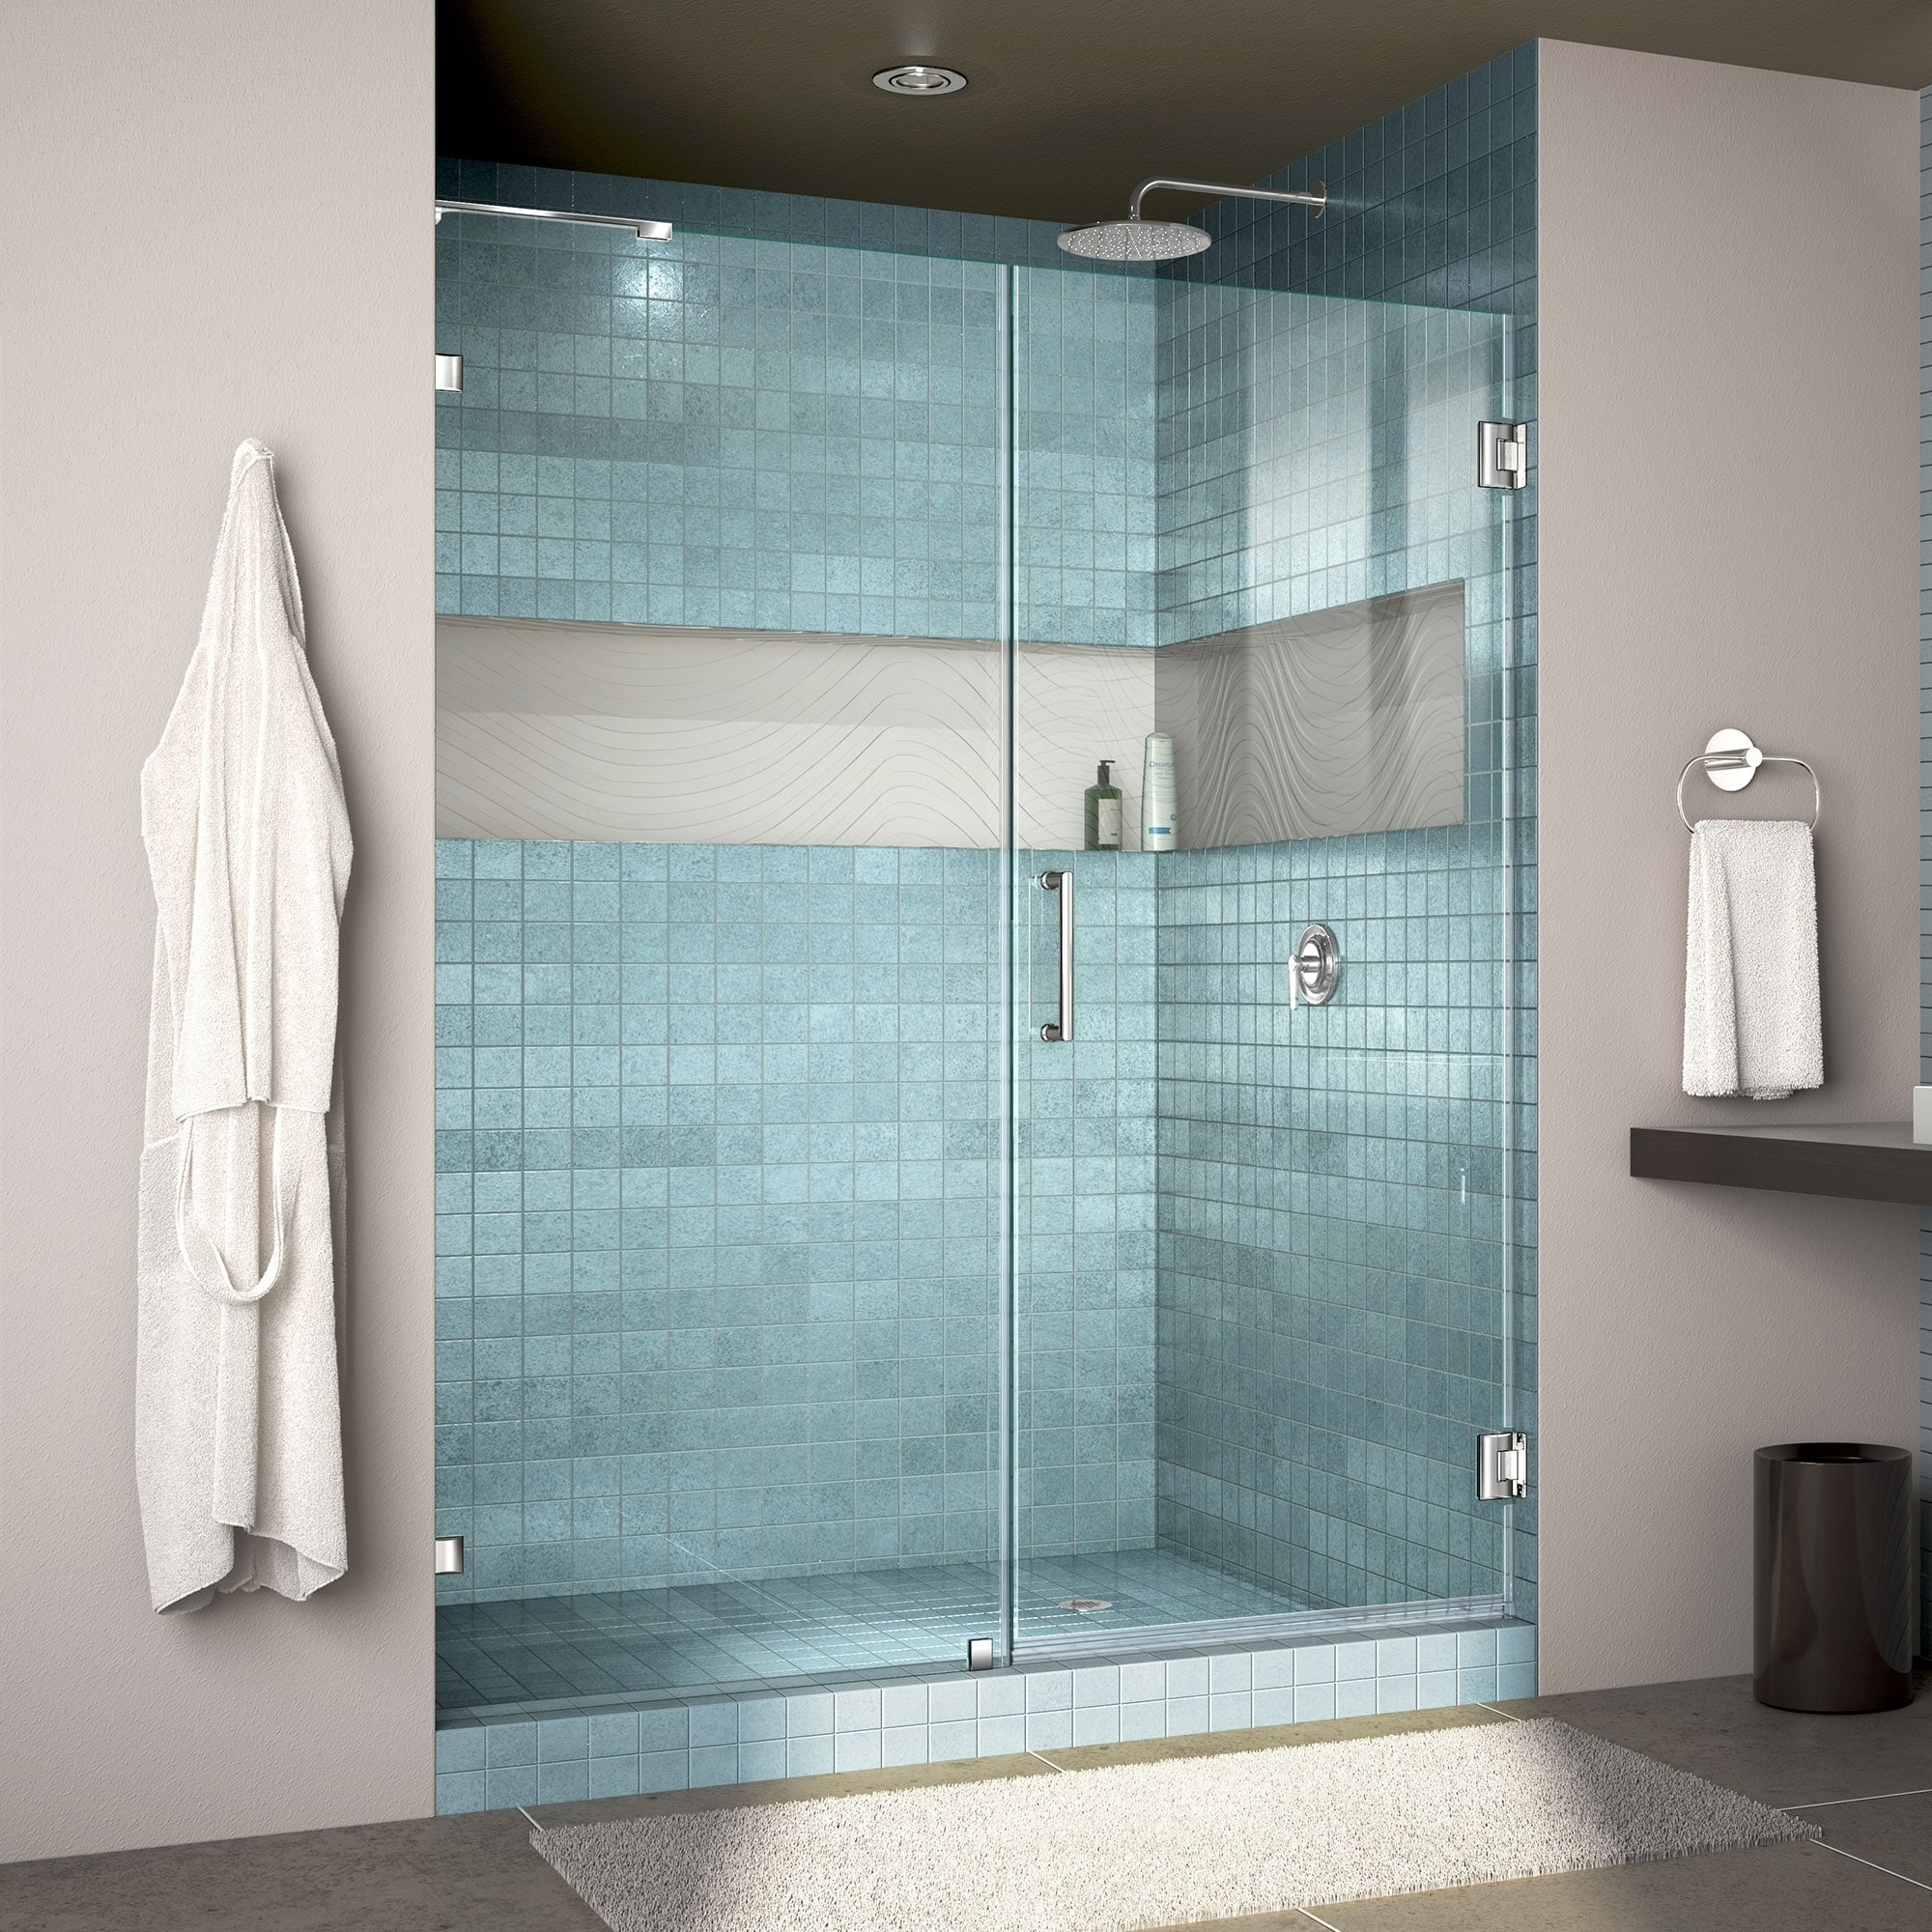 Buy Shower Stalls & Kits Online at Overstock.com   Our Best Showers ...